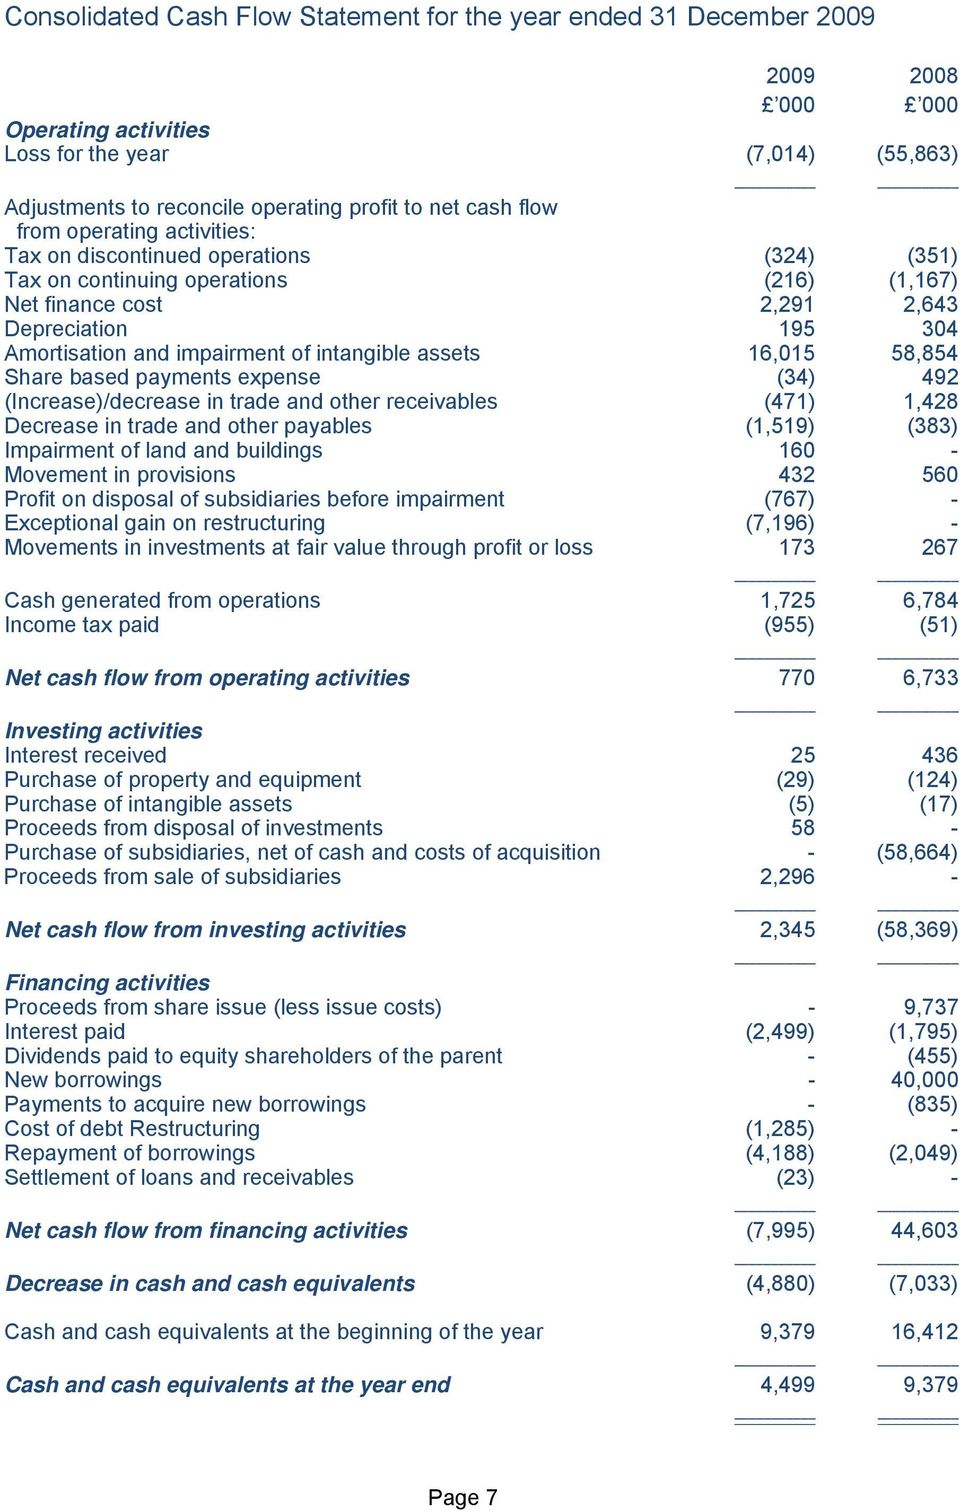 intangible assets 16,015 58,854 Share based payments expense (34) 492 (Increase)/decrease in trade and other receivables (471) 1,428 Decrease in trade and other payables (1,519) (383) Impairment of